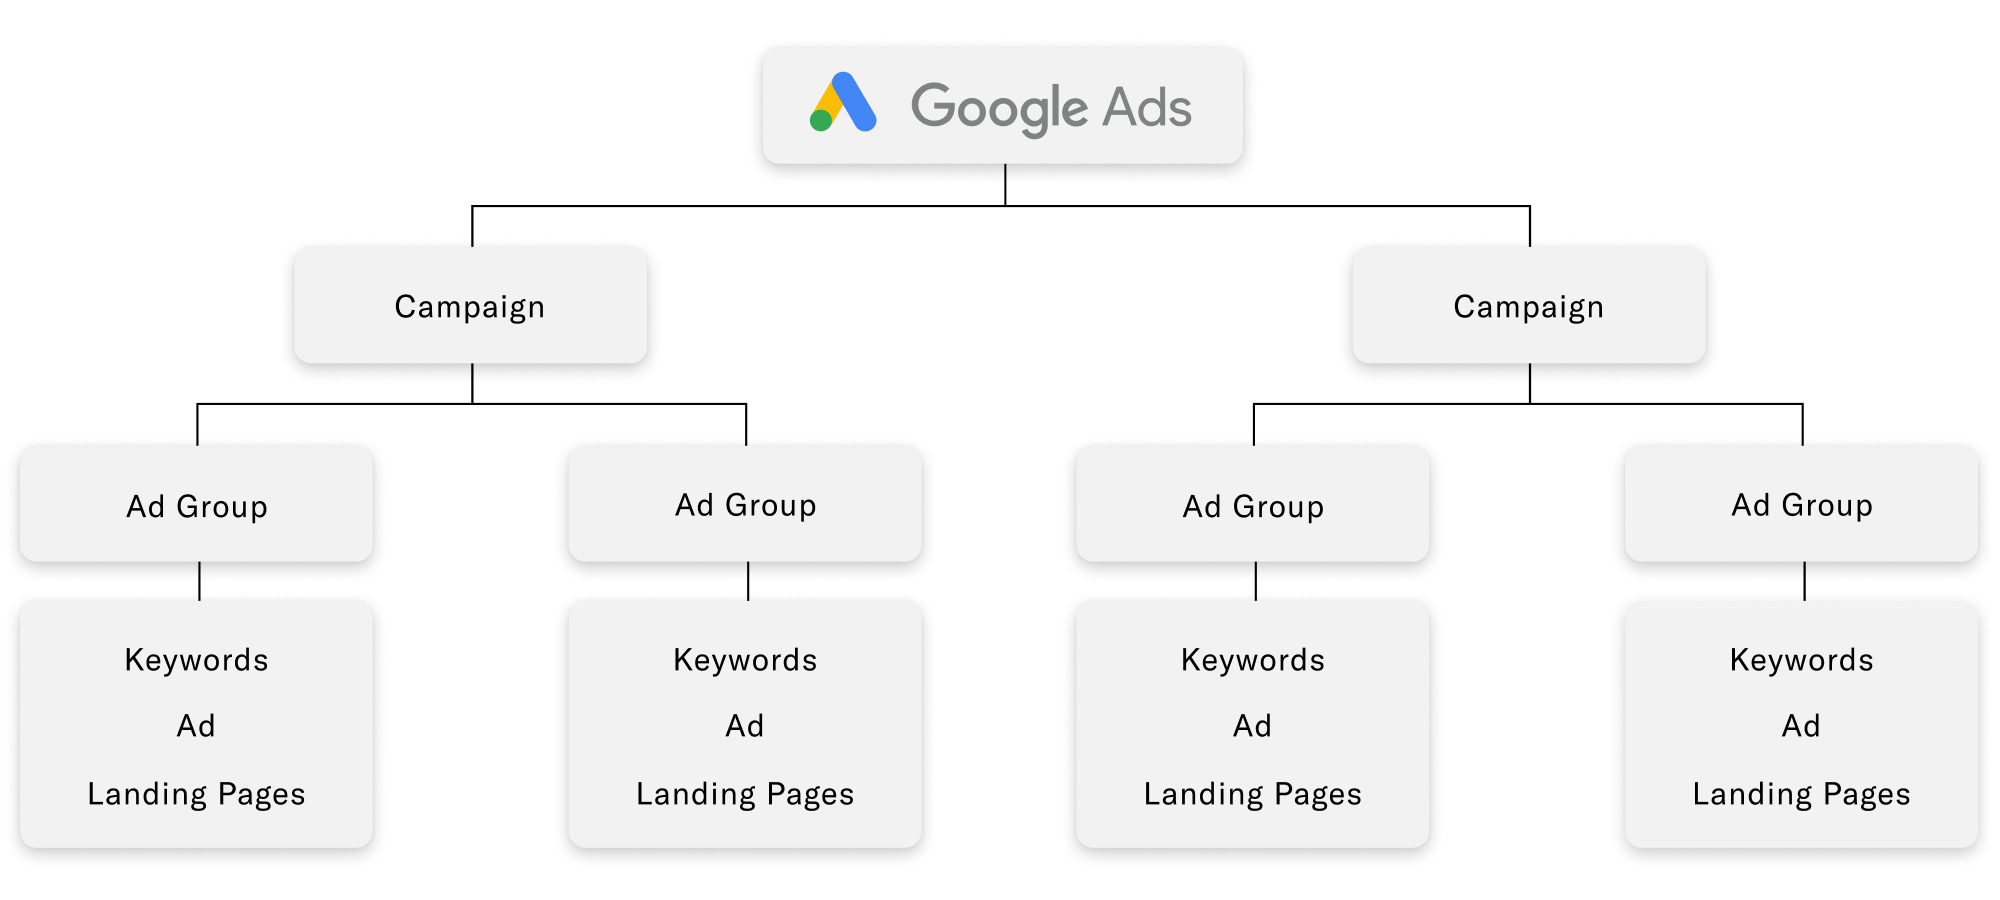 How to structure a Google Ads campaign